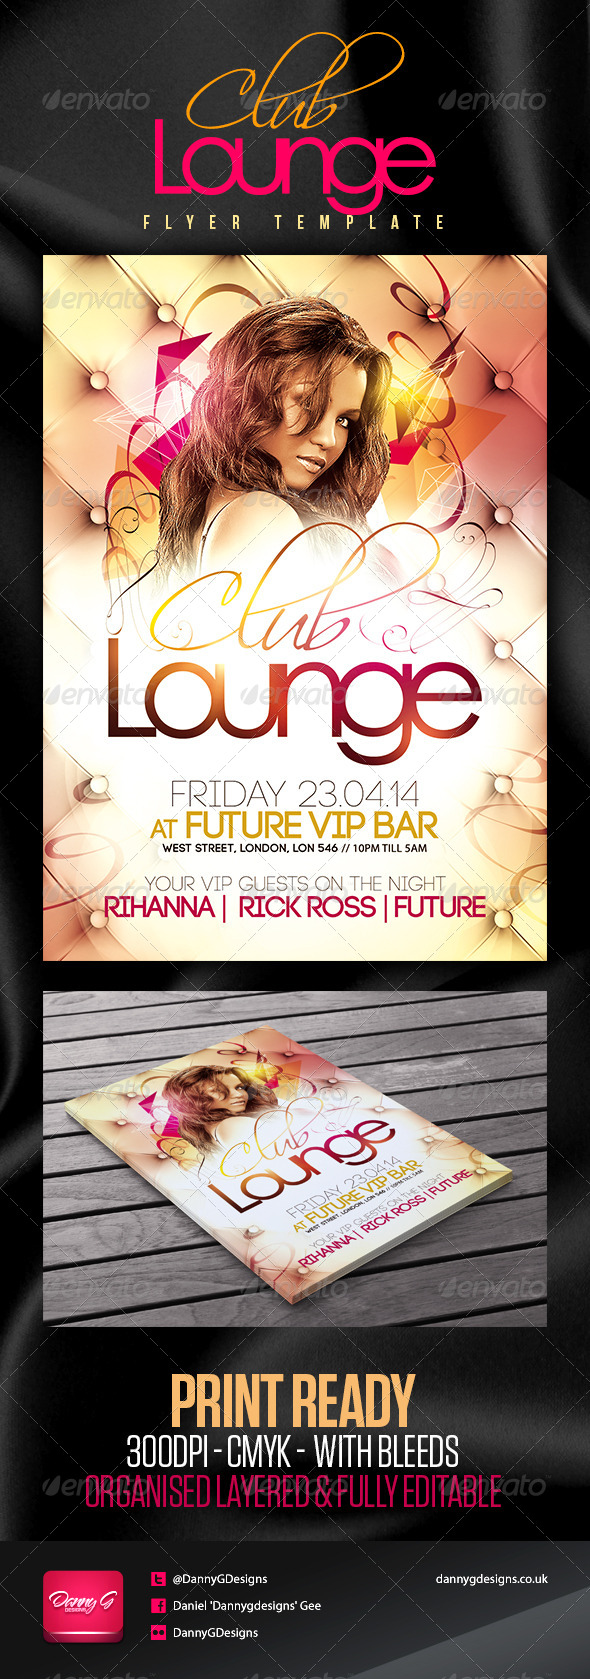 Club Lounge Flyer Template - Clubs & Parties Events